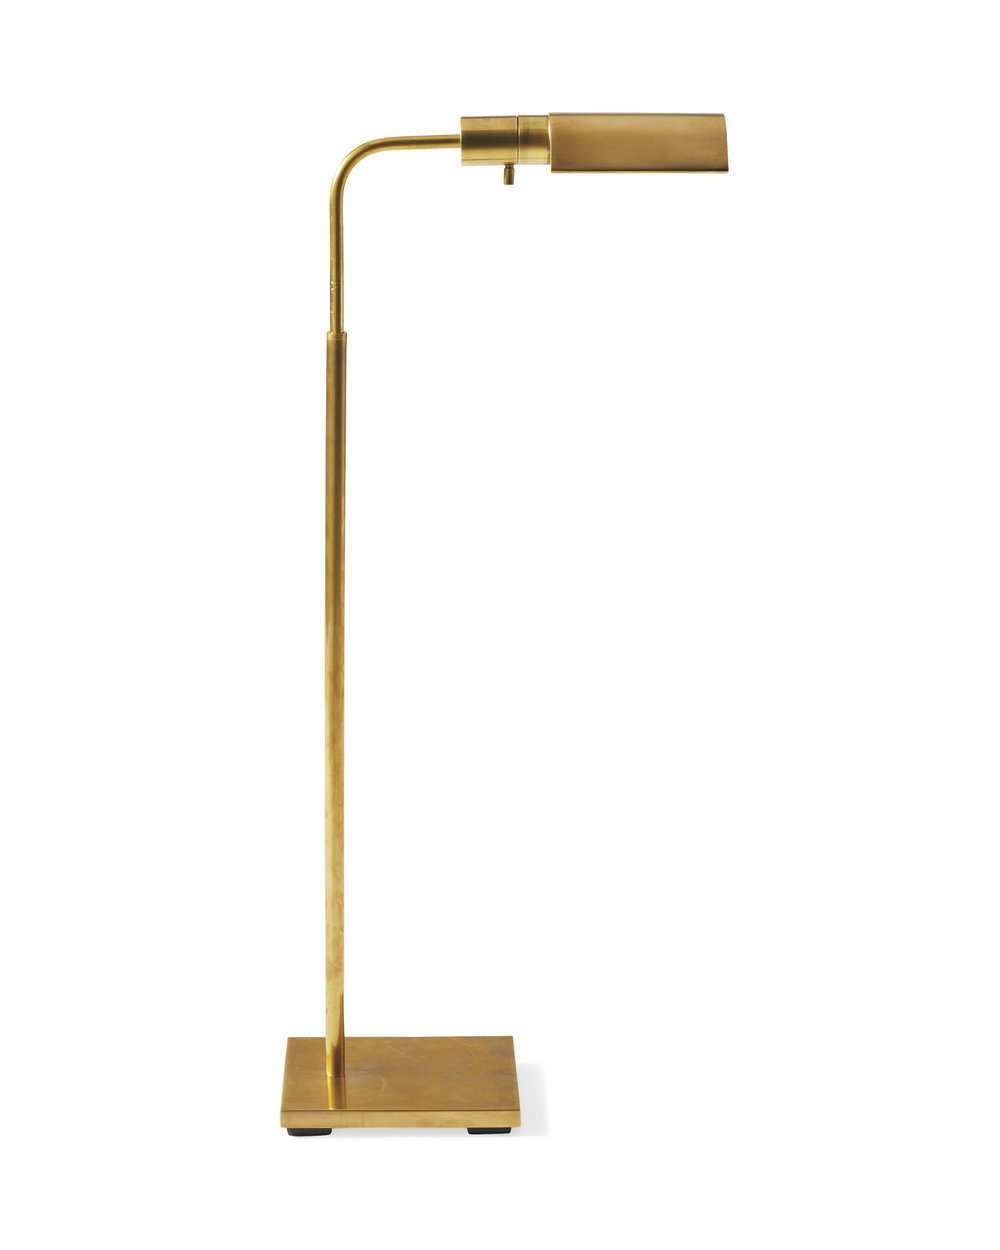 Lighting_Montford_Floor_Lamp_Alt_MV_0467_Crop_SH.jpg